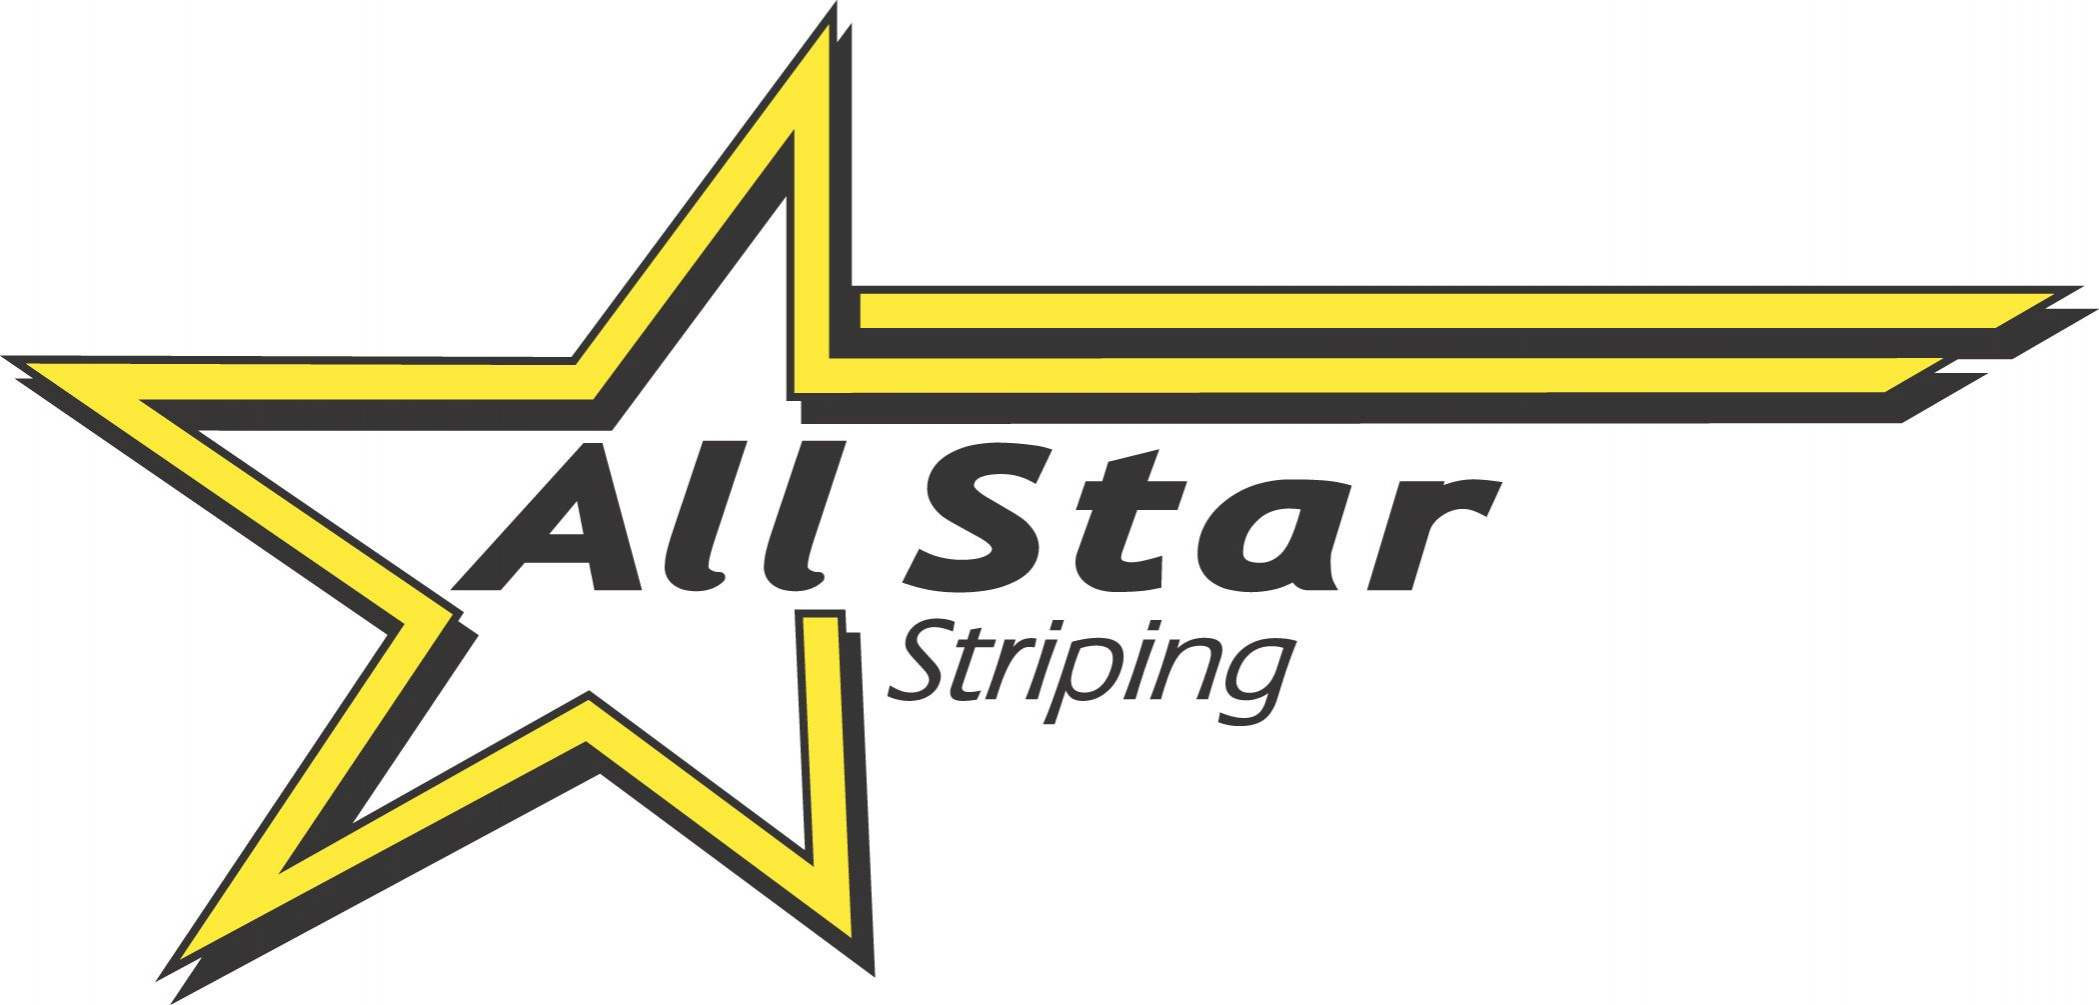 All Star Striping Llc Announces Wbe Certification All Star